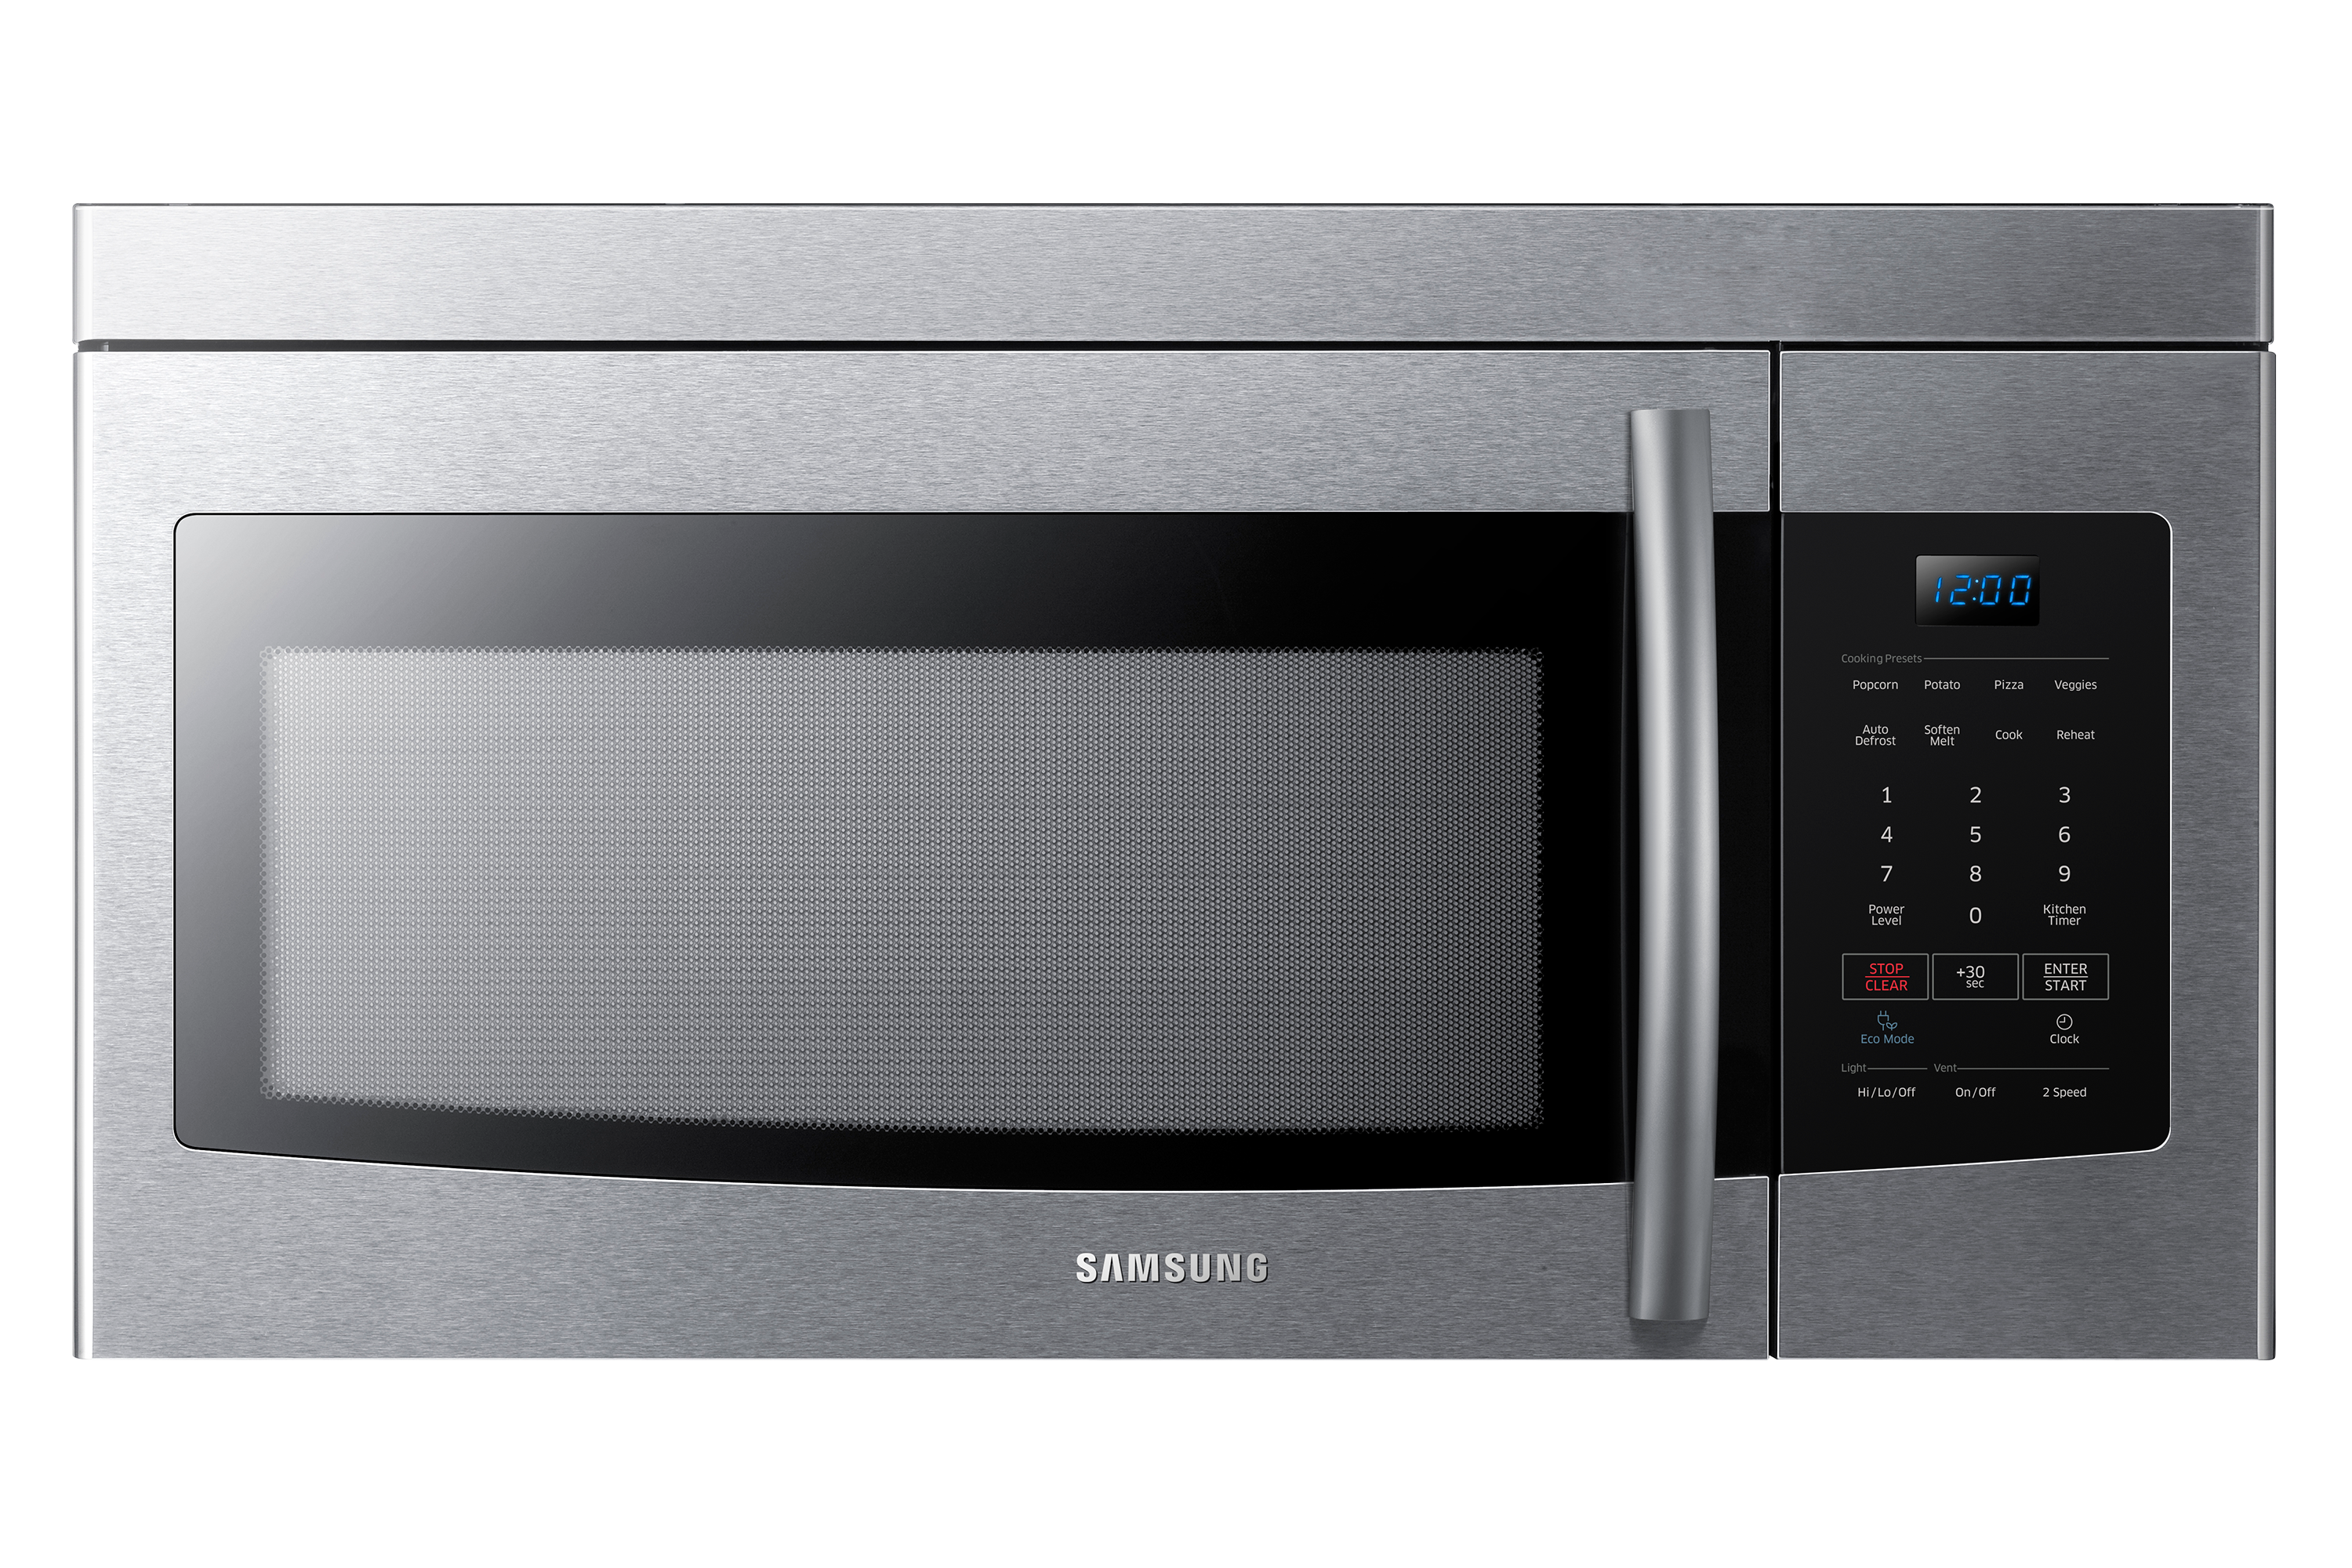 Samsung Me16k3000as Over The Range Microwave 1 6 Cu Ft